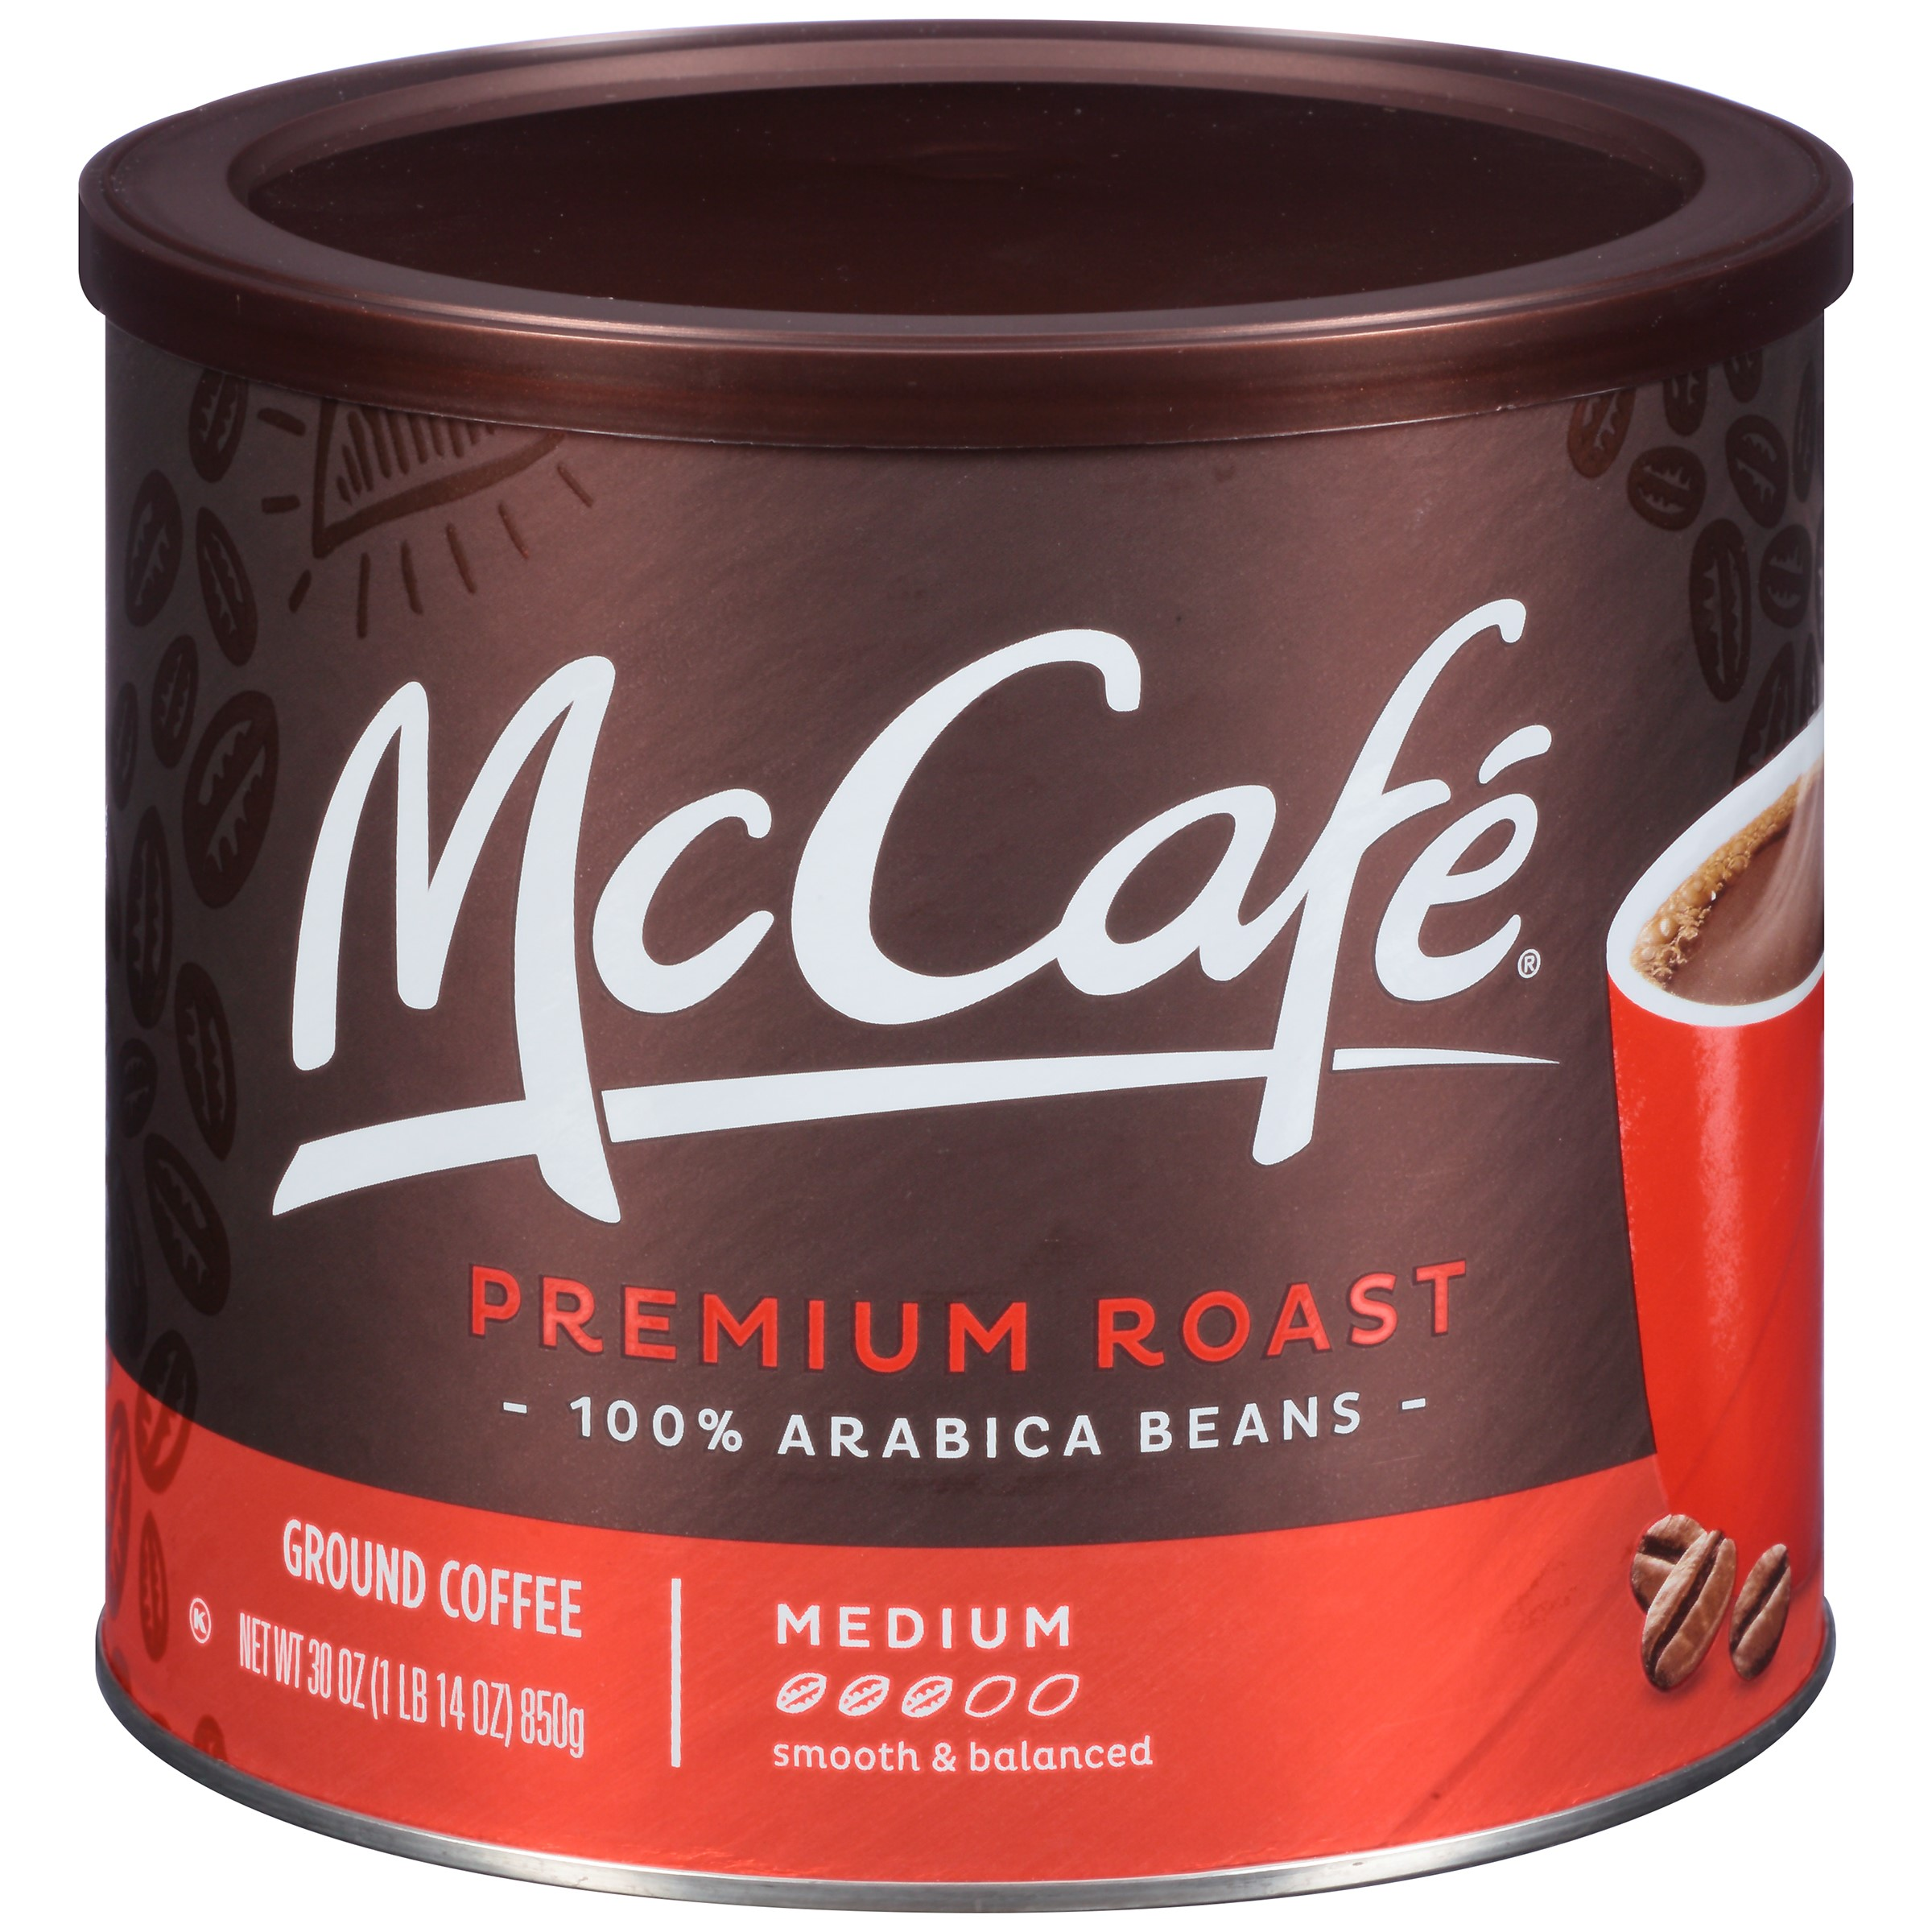 McCafe Premium Medium Roast Ground Coffee, 30 oz (850g) Canister